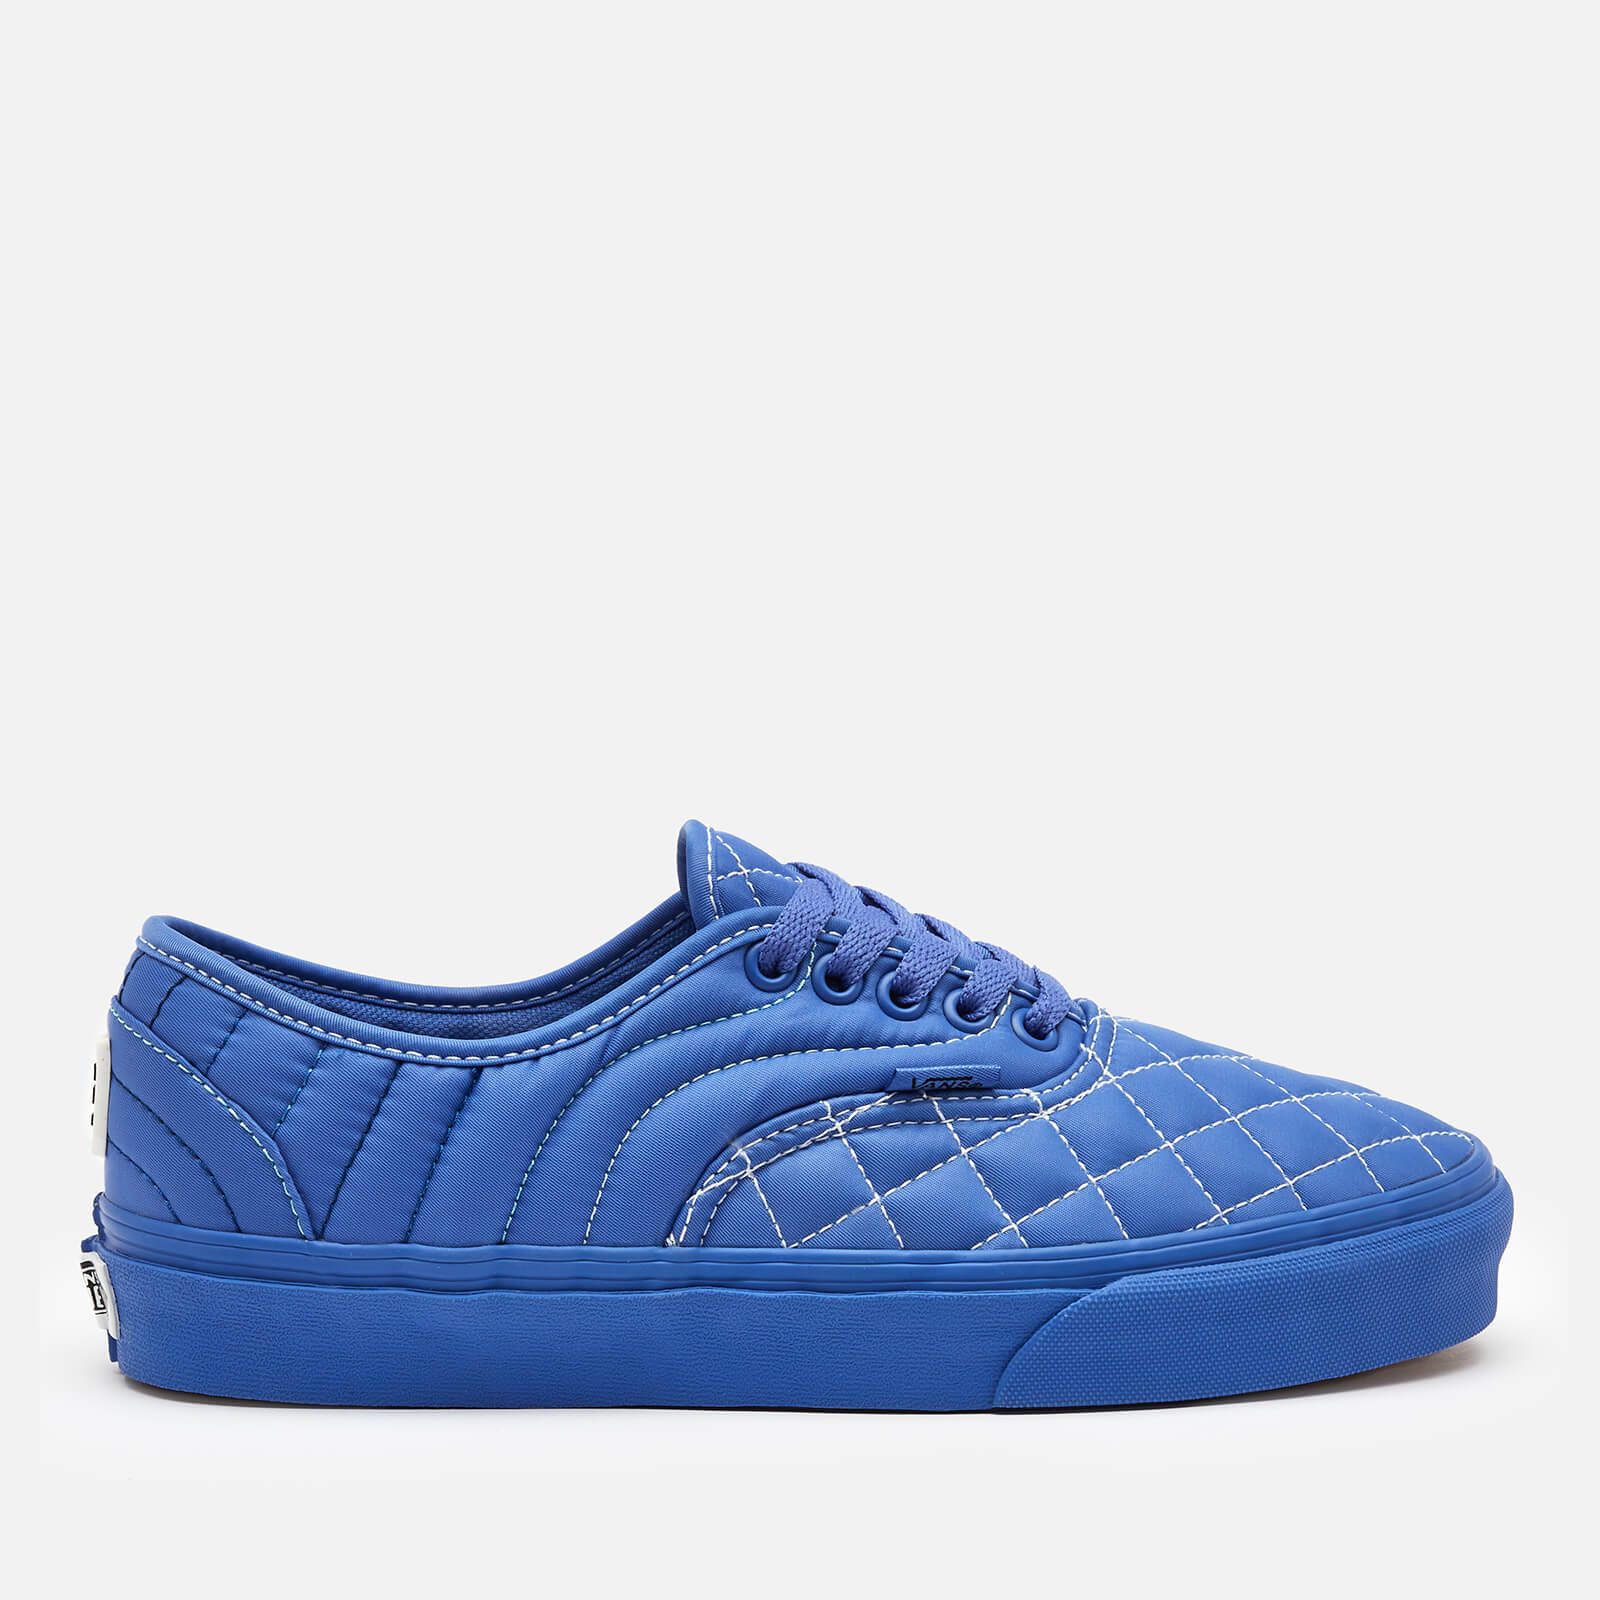 Vans X Opening Ceremony Authentic Quilted Trainers - Baja Blue - UK 3